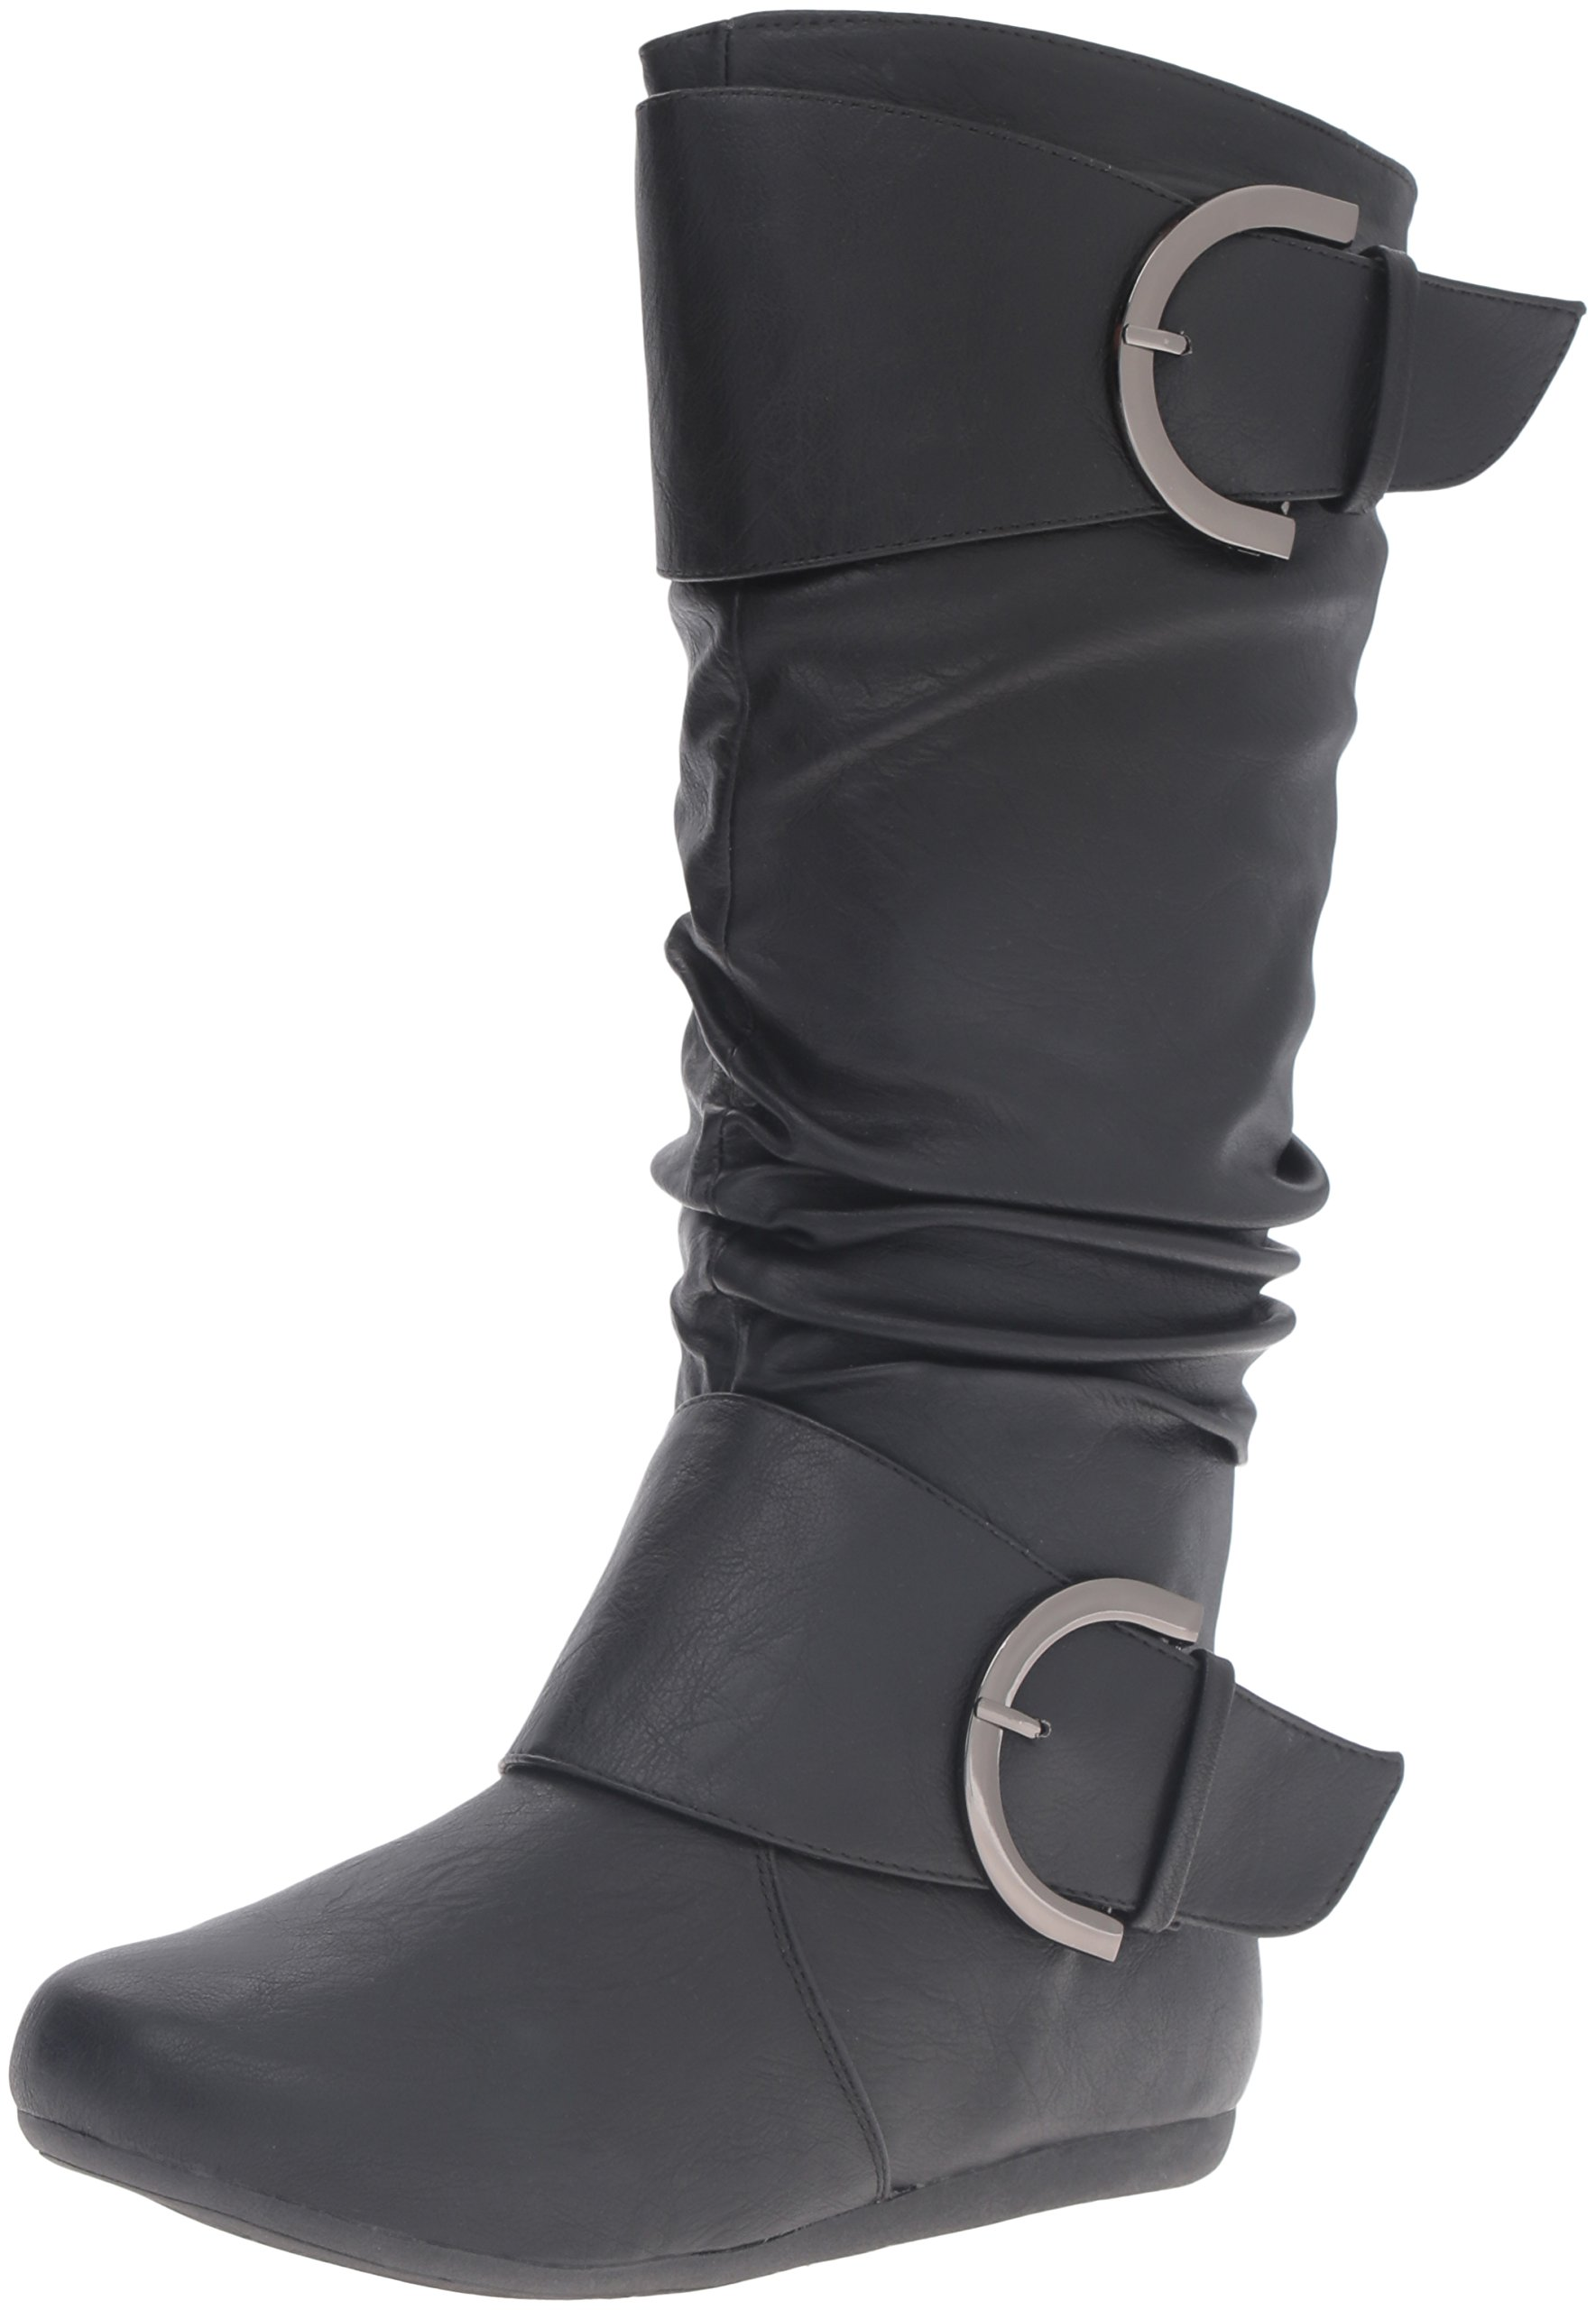 Top Moda Women's Round Toe Slouchy Boot with Buckle, Black, 5